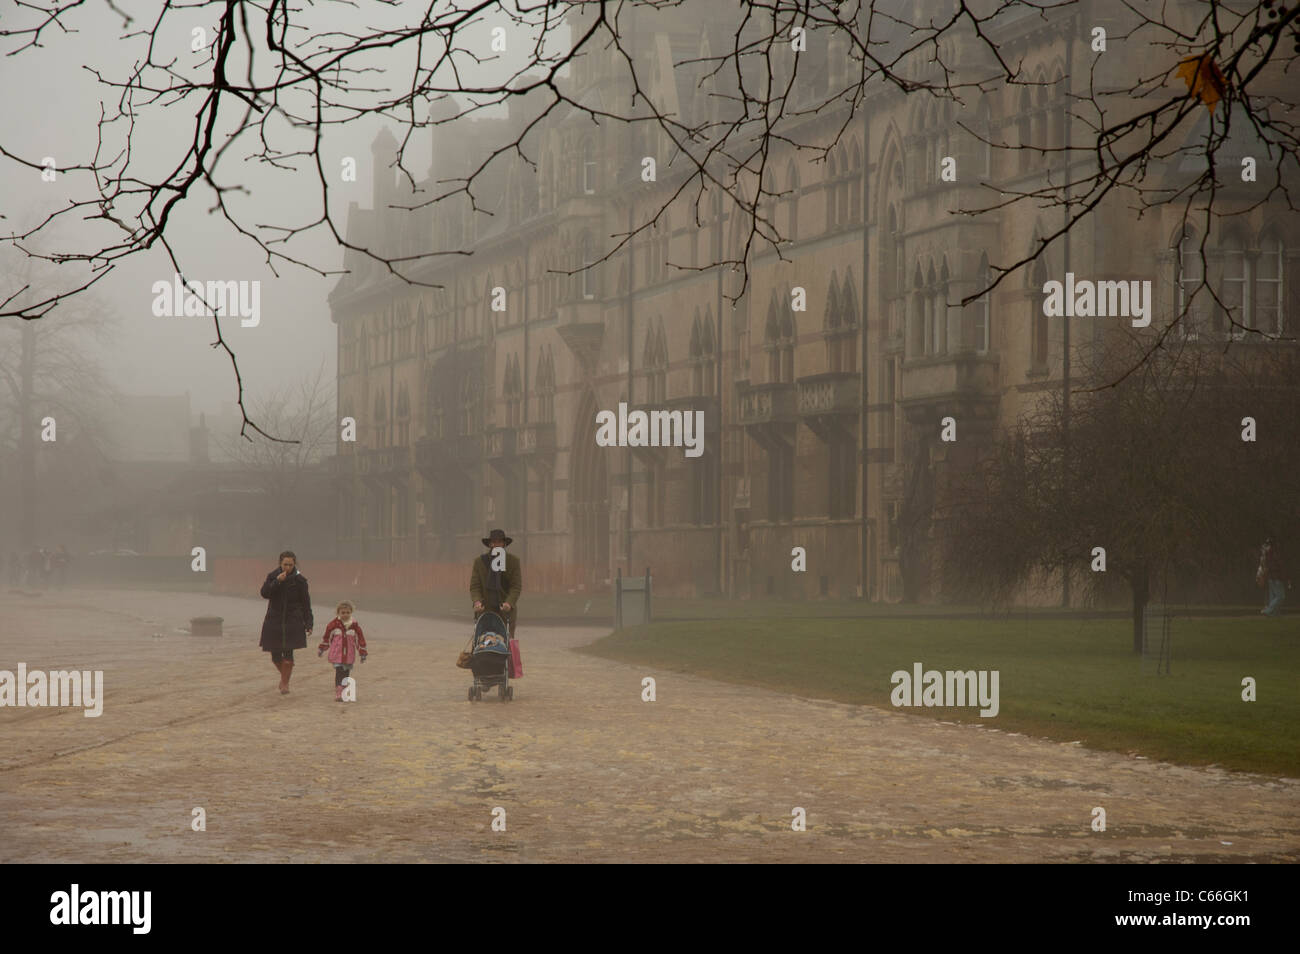 Family walking in Fog in Christ Church Meadow, Oxford, England - Stock Image